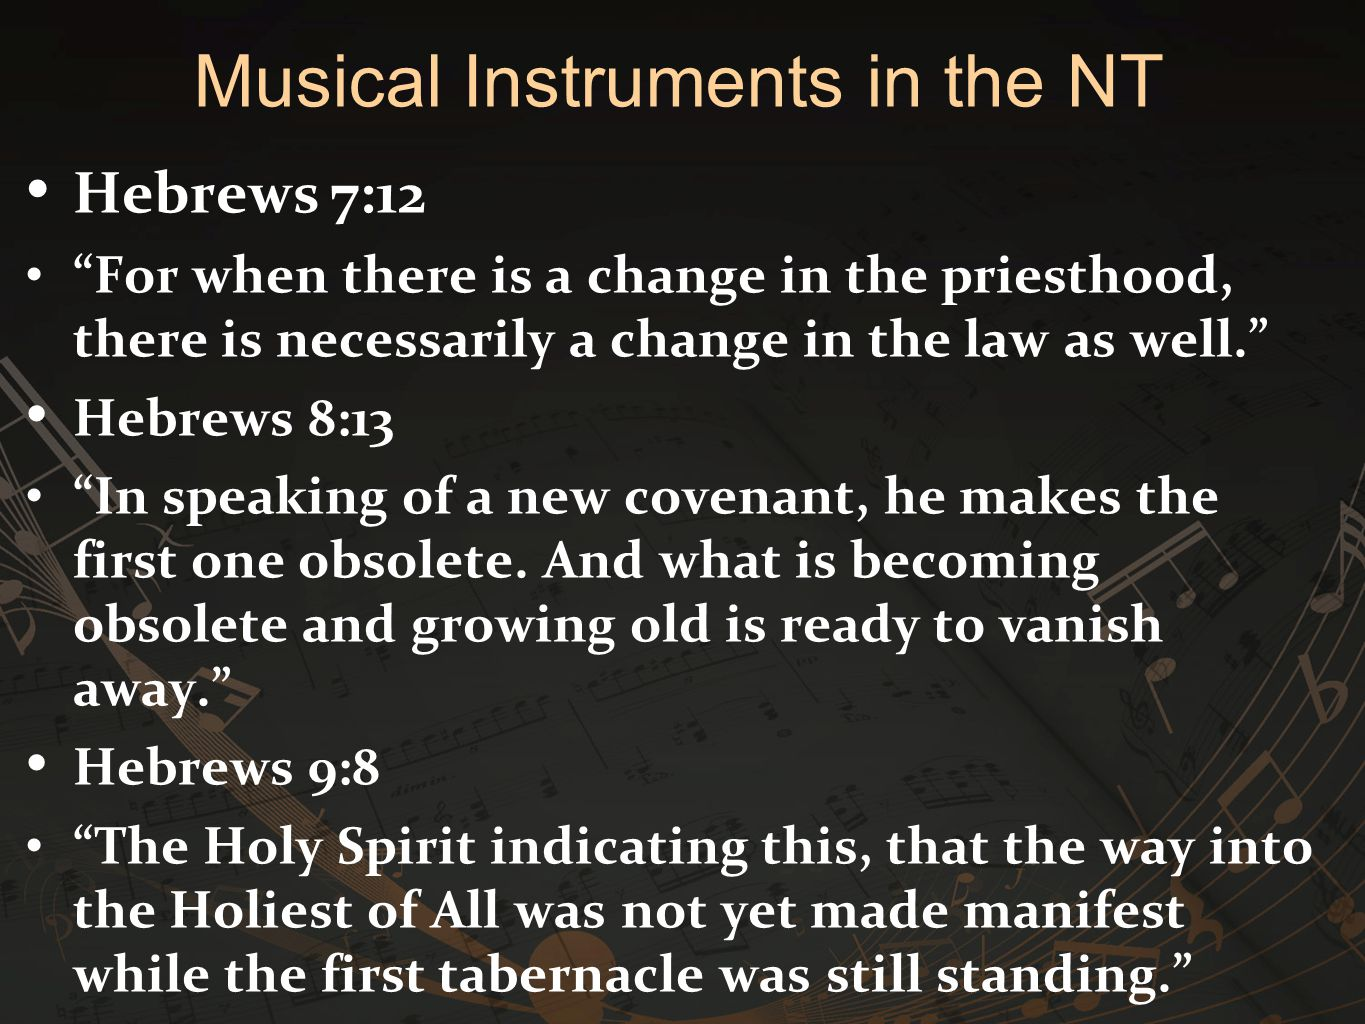 Hebrews 7:12 For when there is a change in the priesthood, there is necessarily a change in the law as well. Hebrews 8:13 In speaking of a new covenant, he makes the first one obsolete.